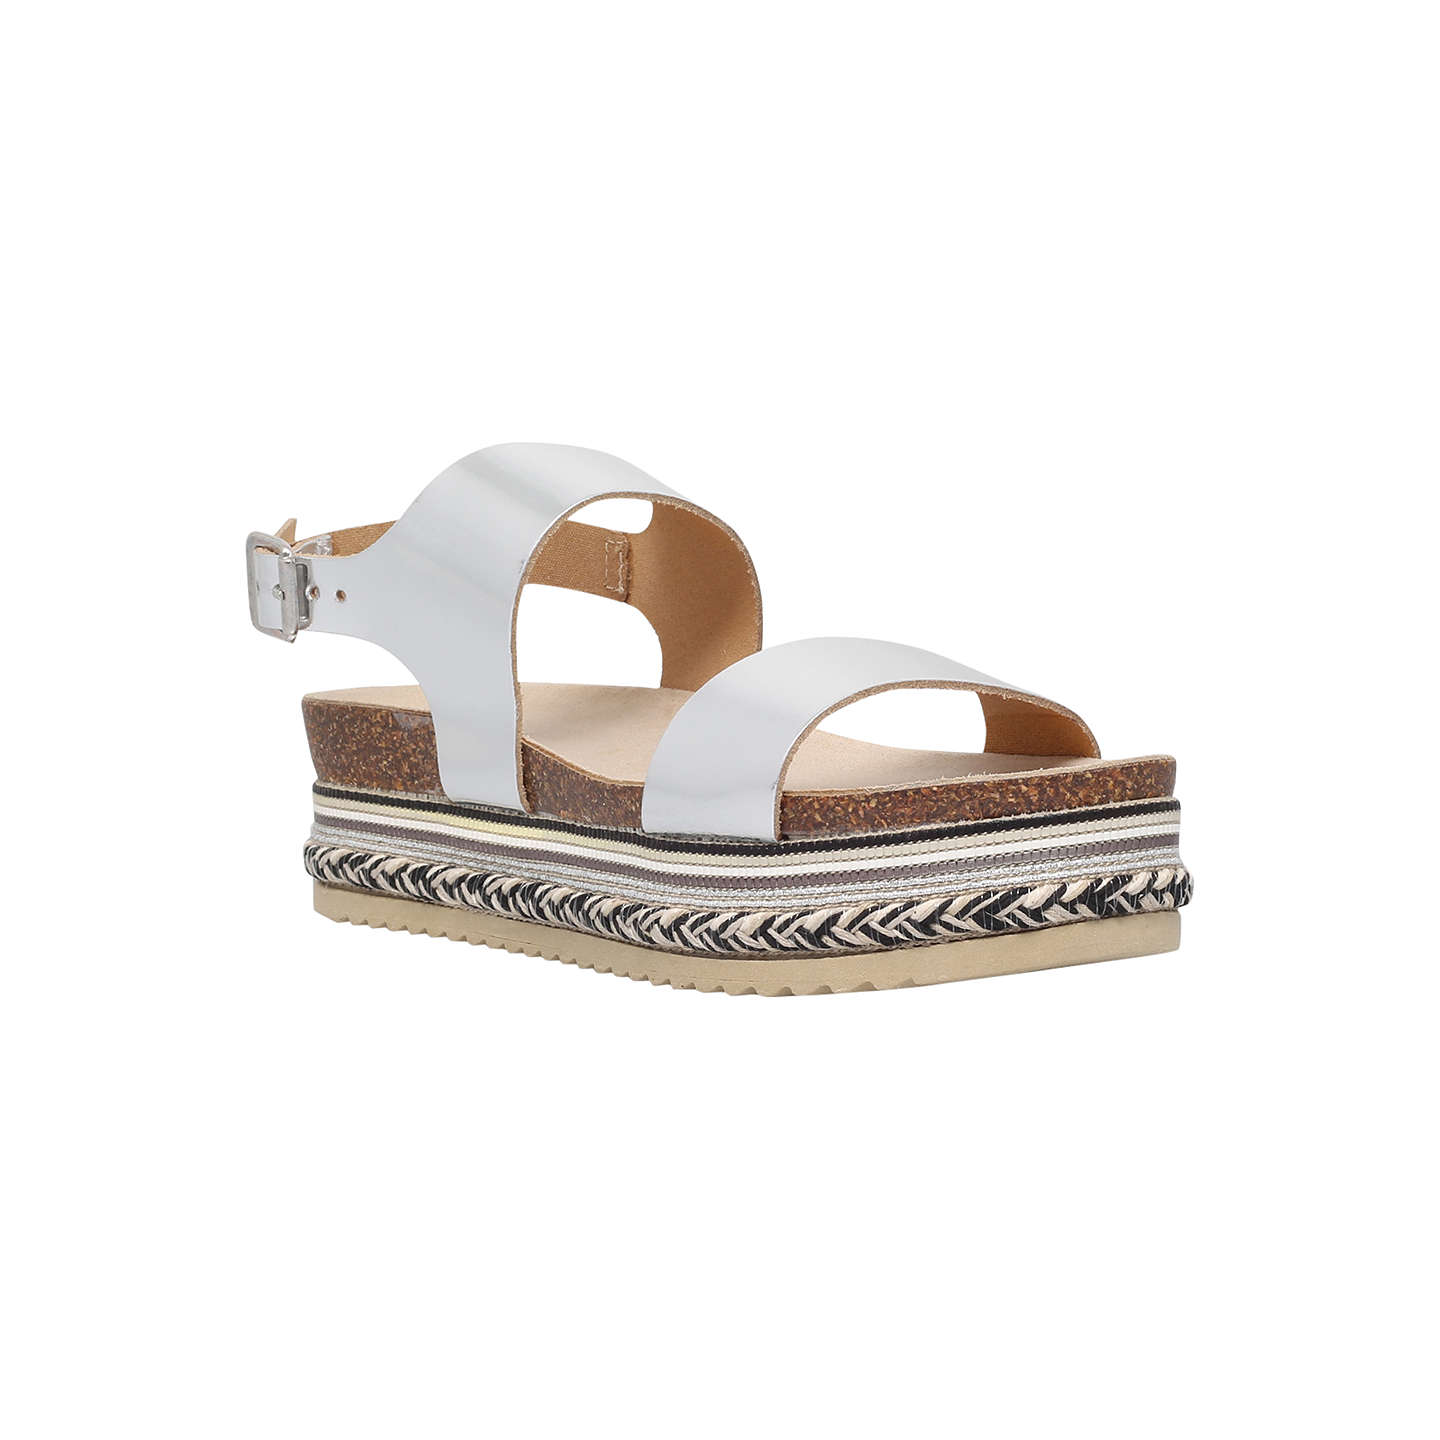 CARVELA Kitten leather sandals Silver - Q5832